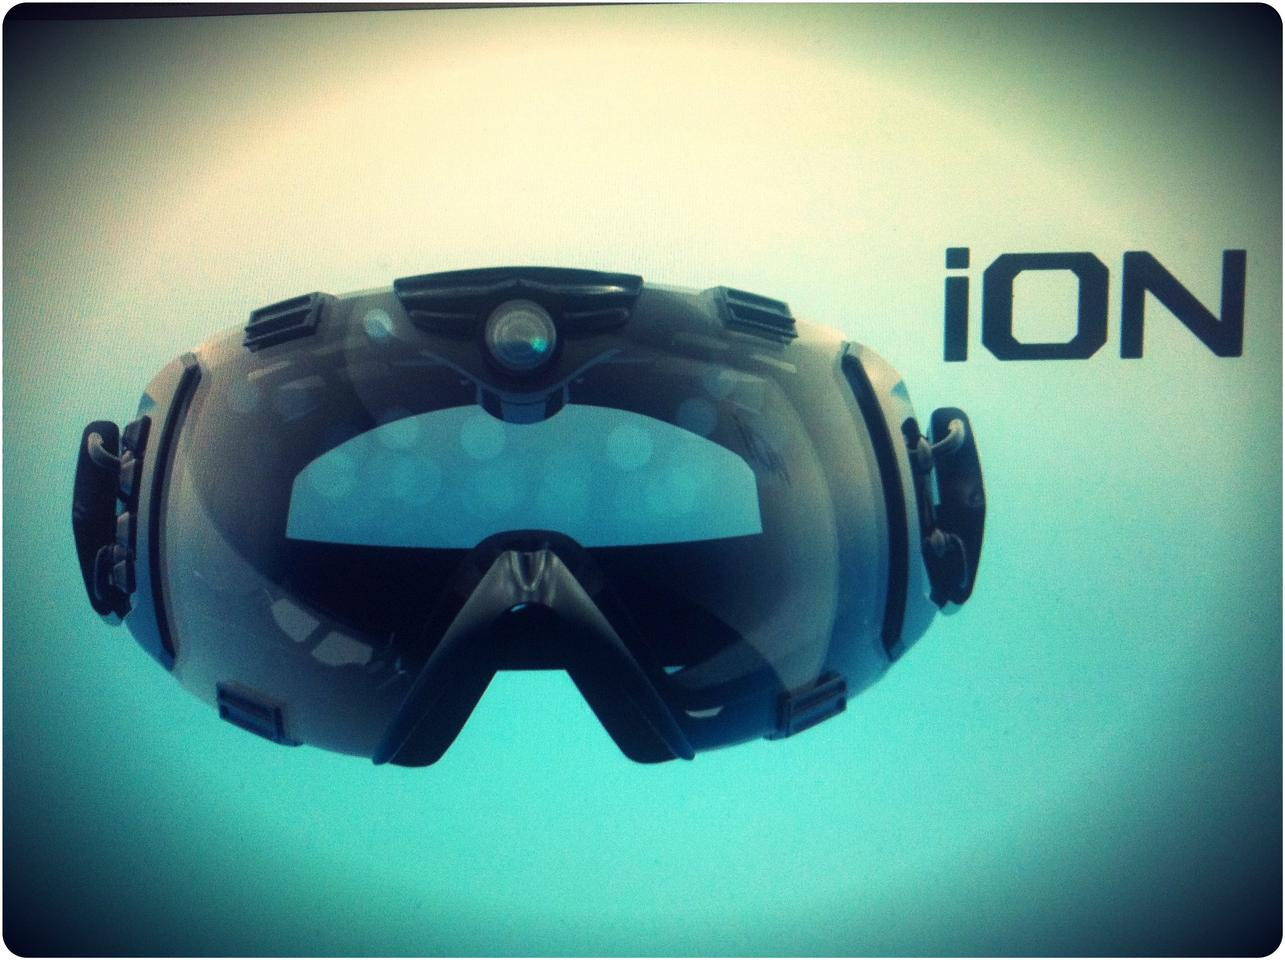 HD Camera and ski goggles combine in the Zeal iON